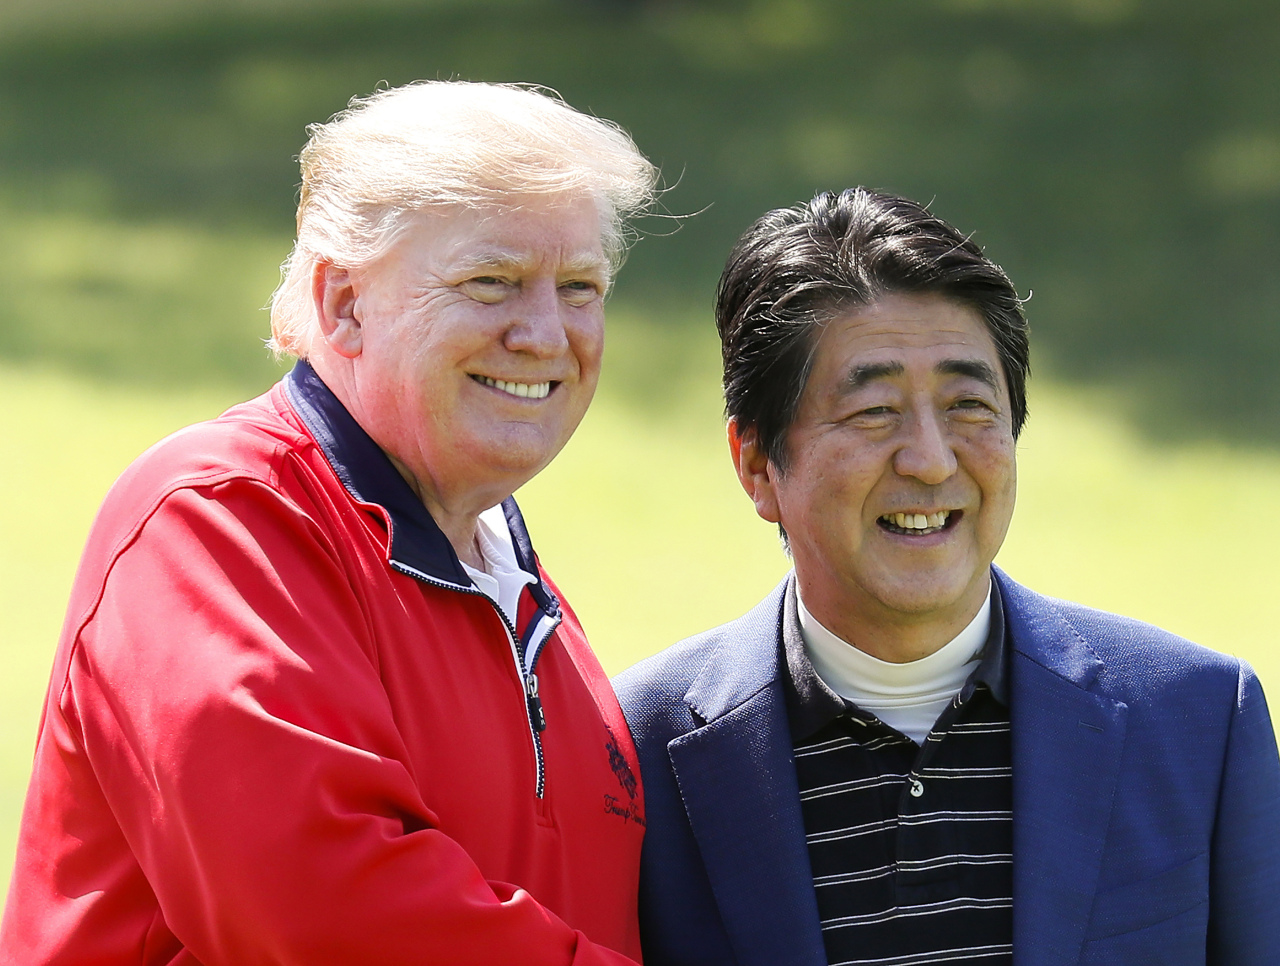 US President Donald Trump (left) and Japanese Prime Minister Shinzo Abe smile before playing a round of golf at Mobara Country Club in Mobara, south of Tokyo, Sunday. (AP-Yonhap)